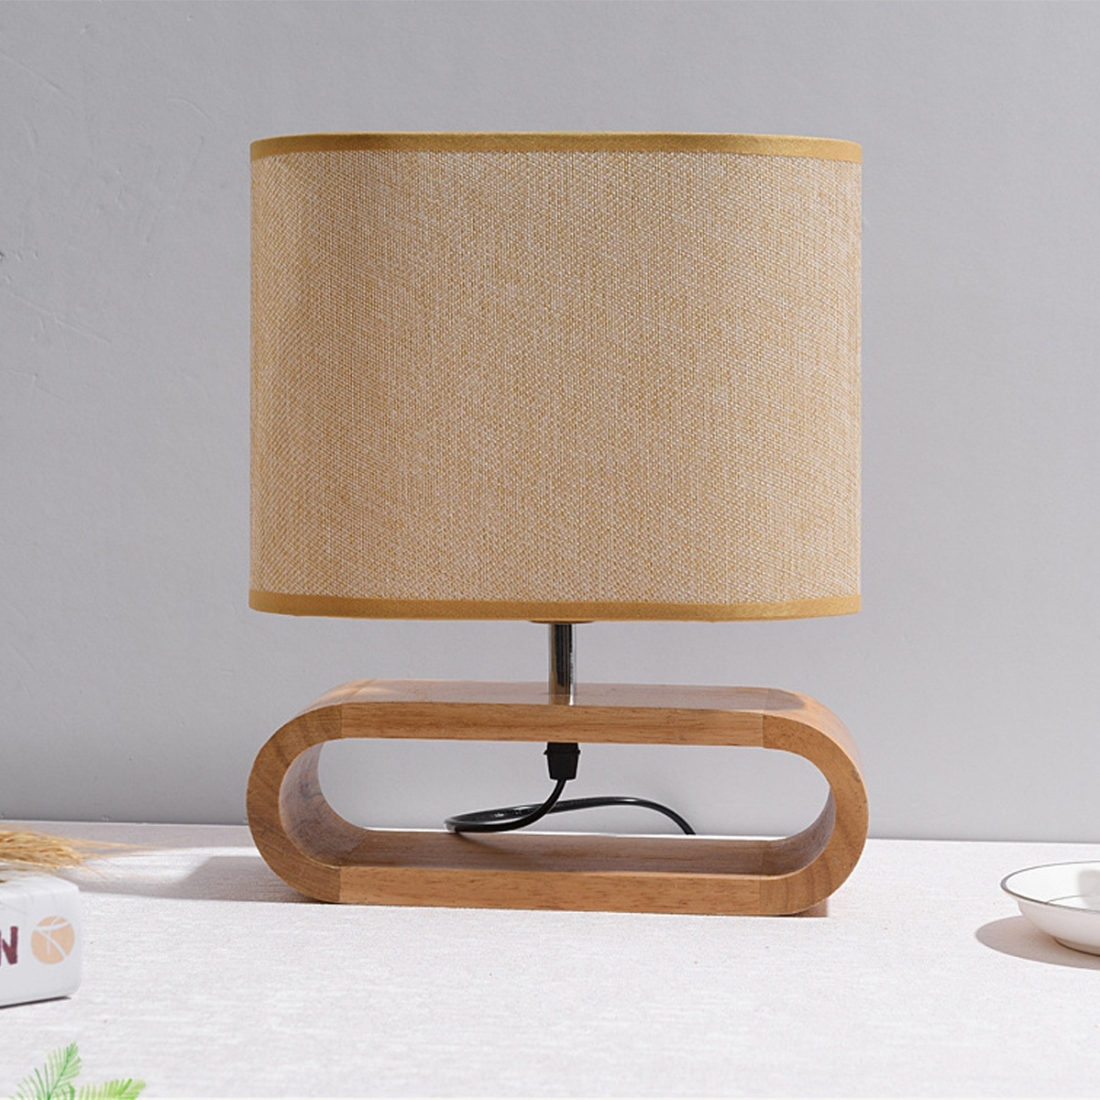 Ywxlight Nordic Led Vertical Table Lamp Bedroom Retro